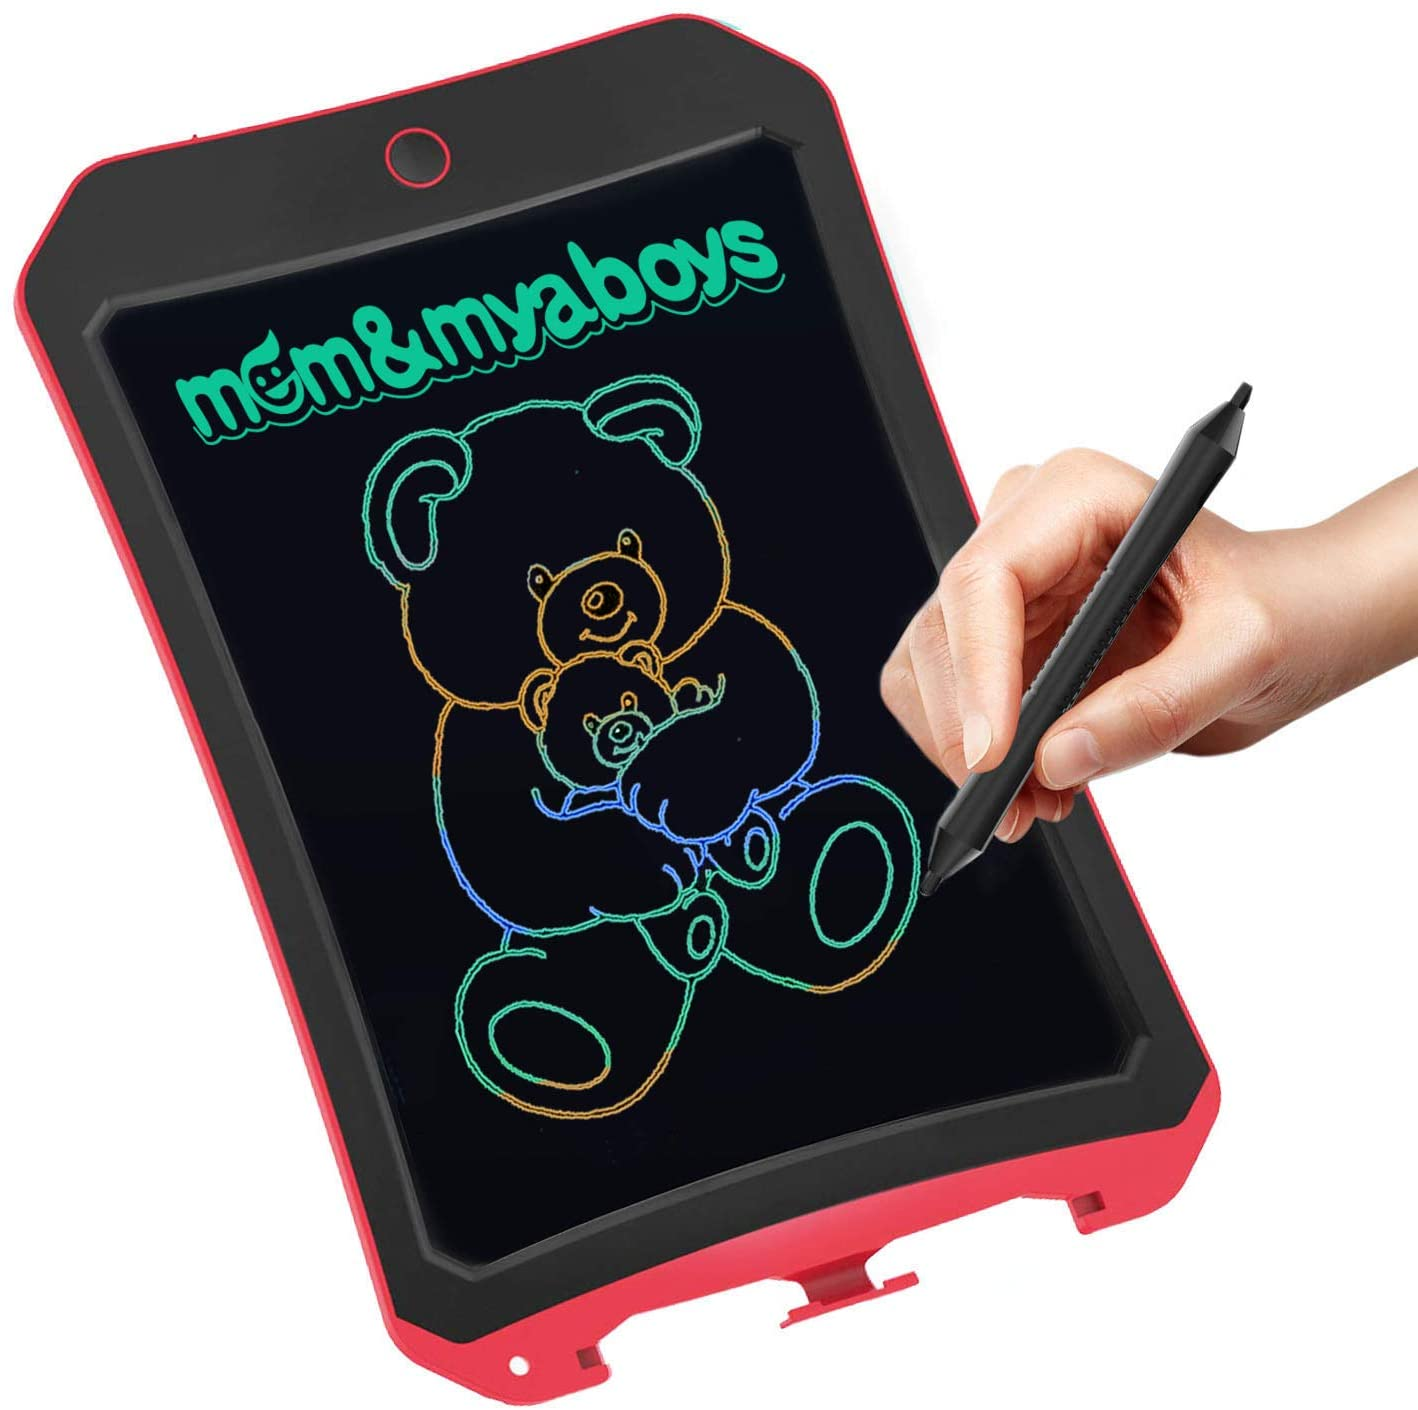 mom&myboys Upgraded Colorful Screen 8.5 Inch LCD Smart Drawing Tablet for Kids Age 3+, Electronic Magnetic Writing Doodlle Board-Toys for 4-8 Year Old Boys Girls Gifts 3 5 6 Years Old(Red)